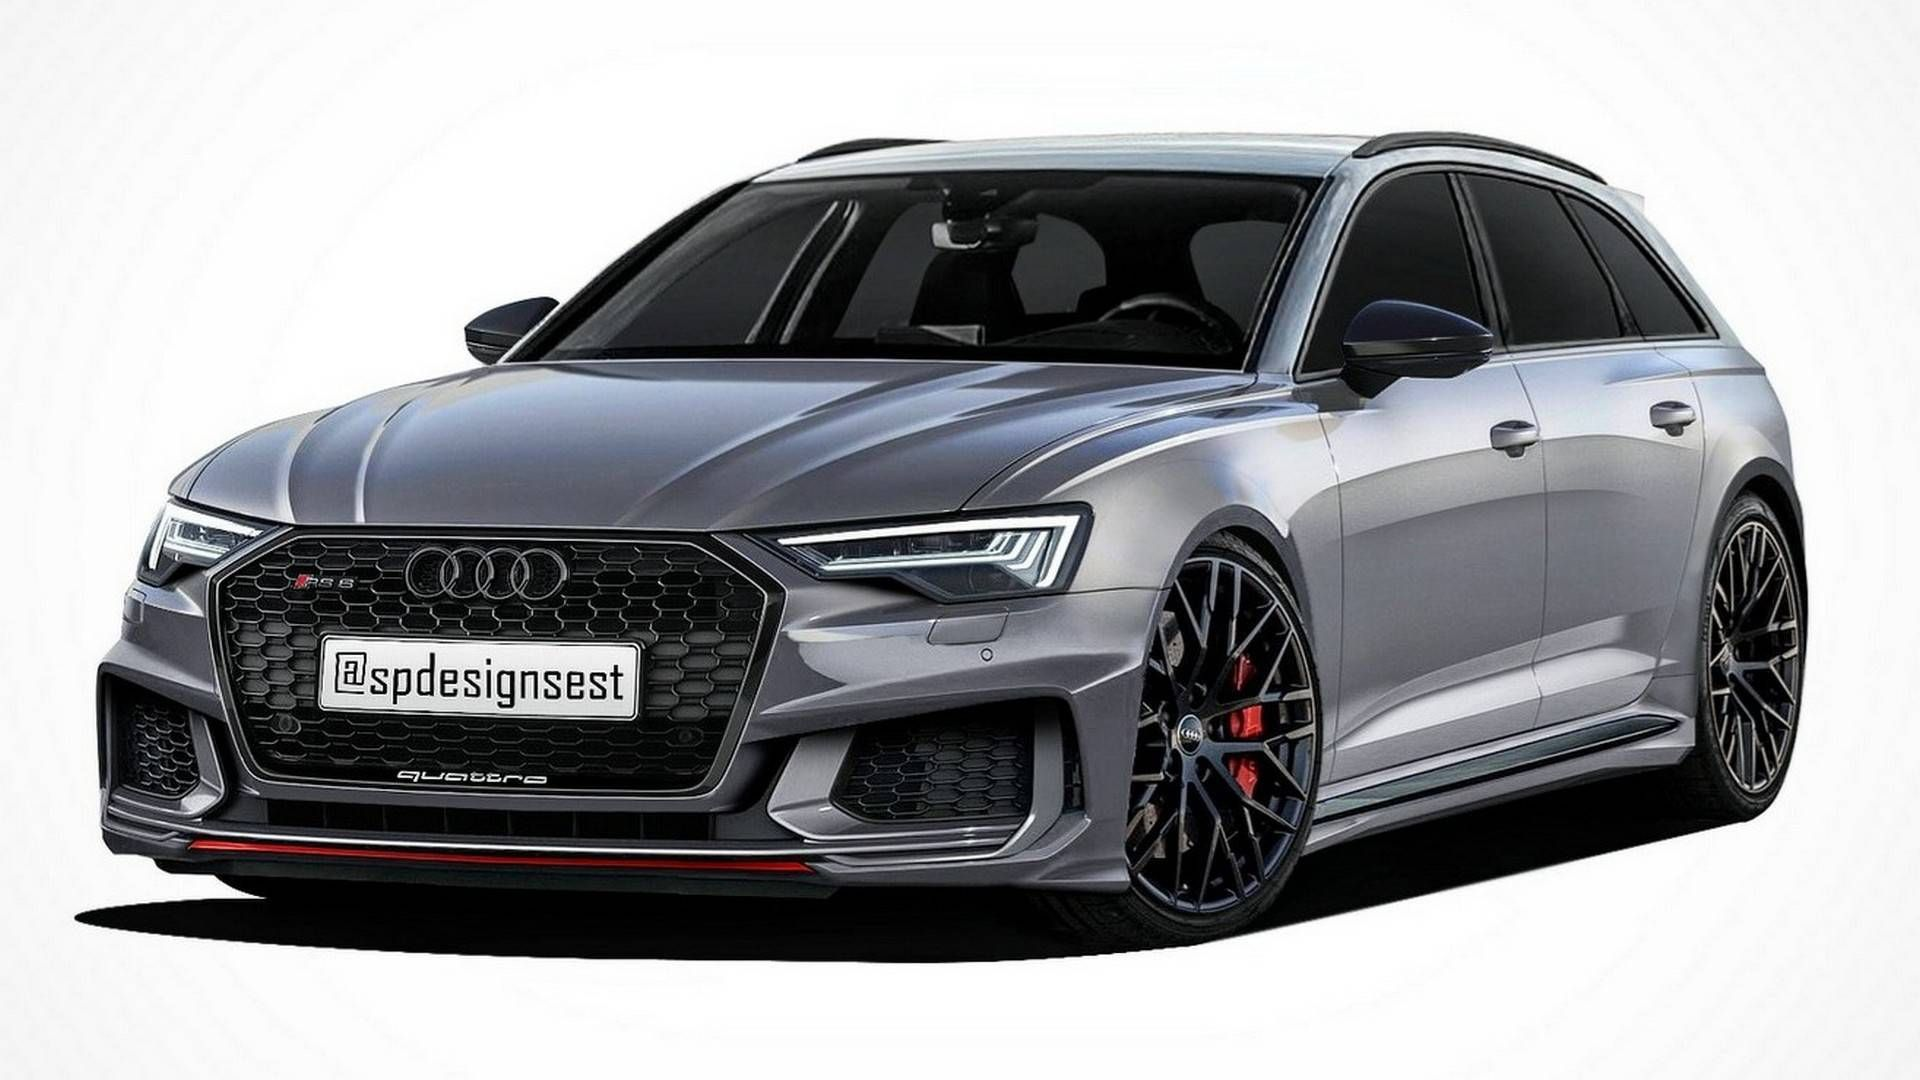 Image Result For Rs6 2019 Audi Rs6 Audi Wagon Audi A6 Avant